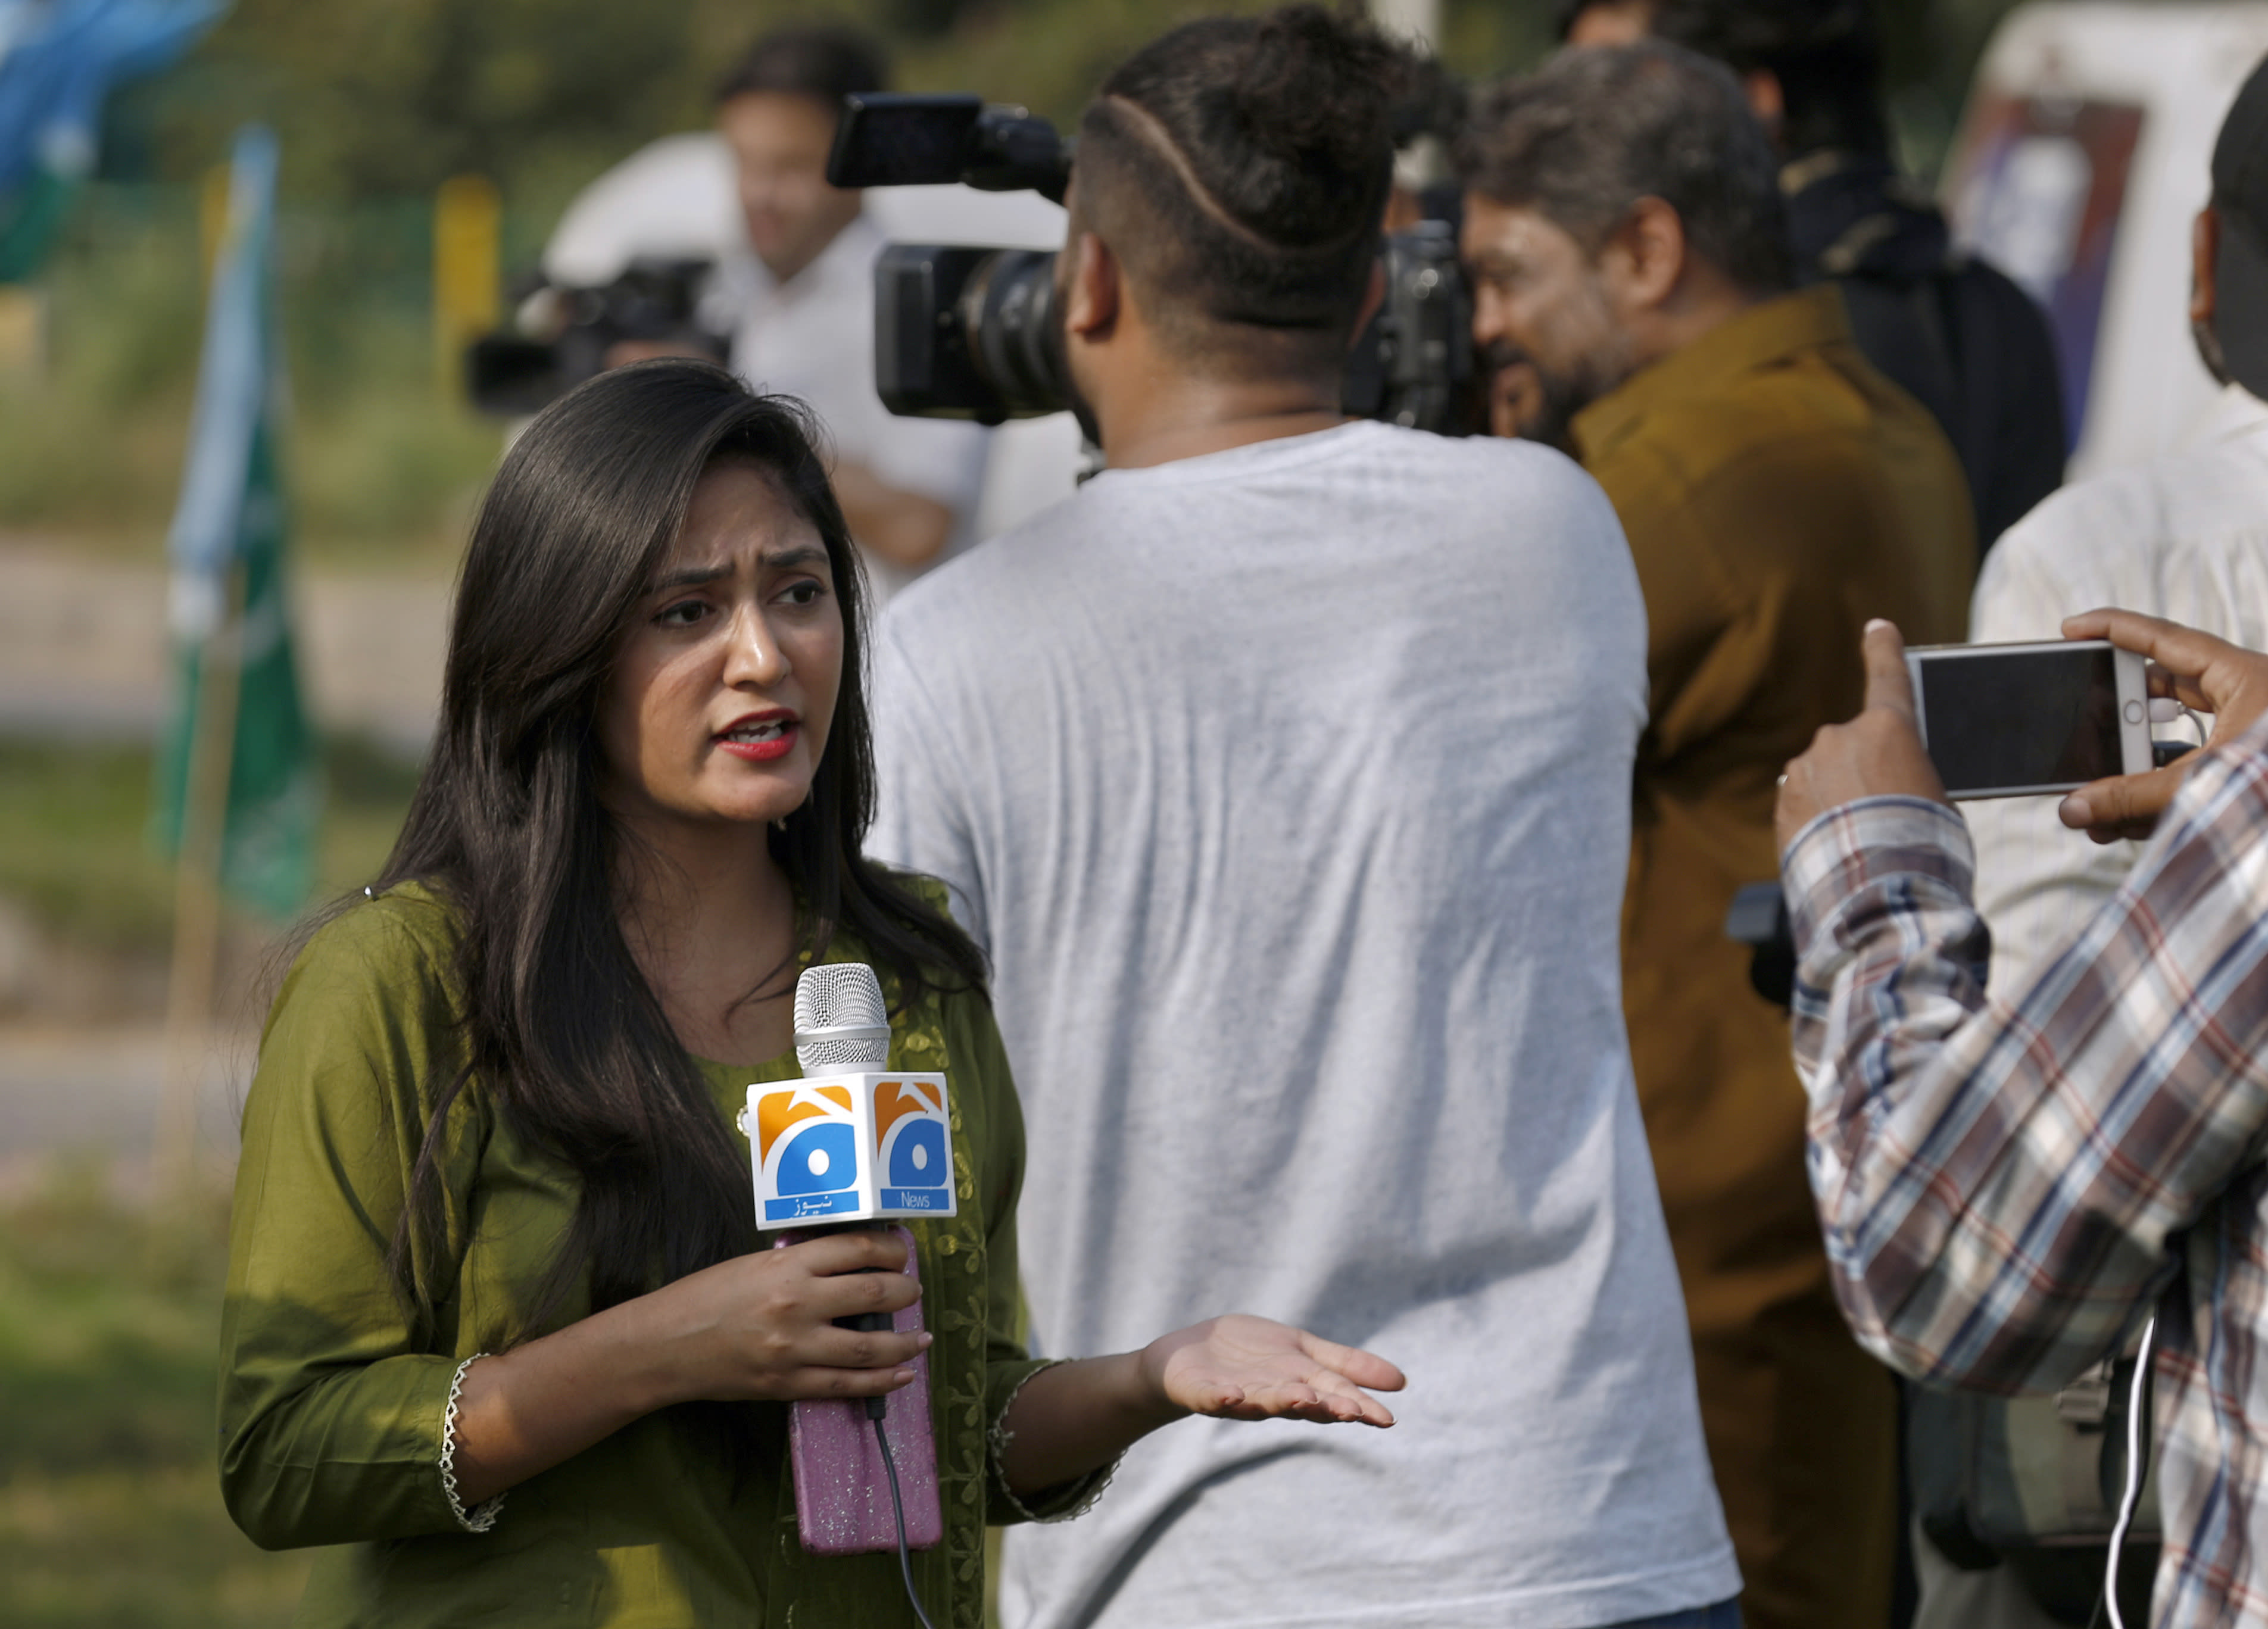 In this Friday, Sept. 11, 2020 photo, Alena Waqar, a female journalist from local tv channel Geo News, gives live reporting during a rally, in Islamabad, Pakistan. Social media attacks against Pakistan's women journalists have been vile and vicious, some threatening rape, others even threatening death and the culprits are most often allied to the ruling party, even prompting the Committee to Protect Journalists to issue a statement on Friday condemning the relentless attacks. (AP Photo/Anjum Naveed)